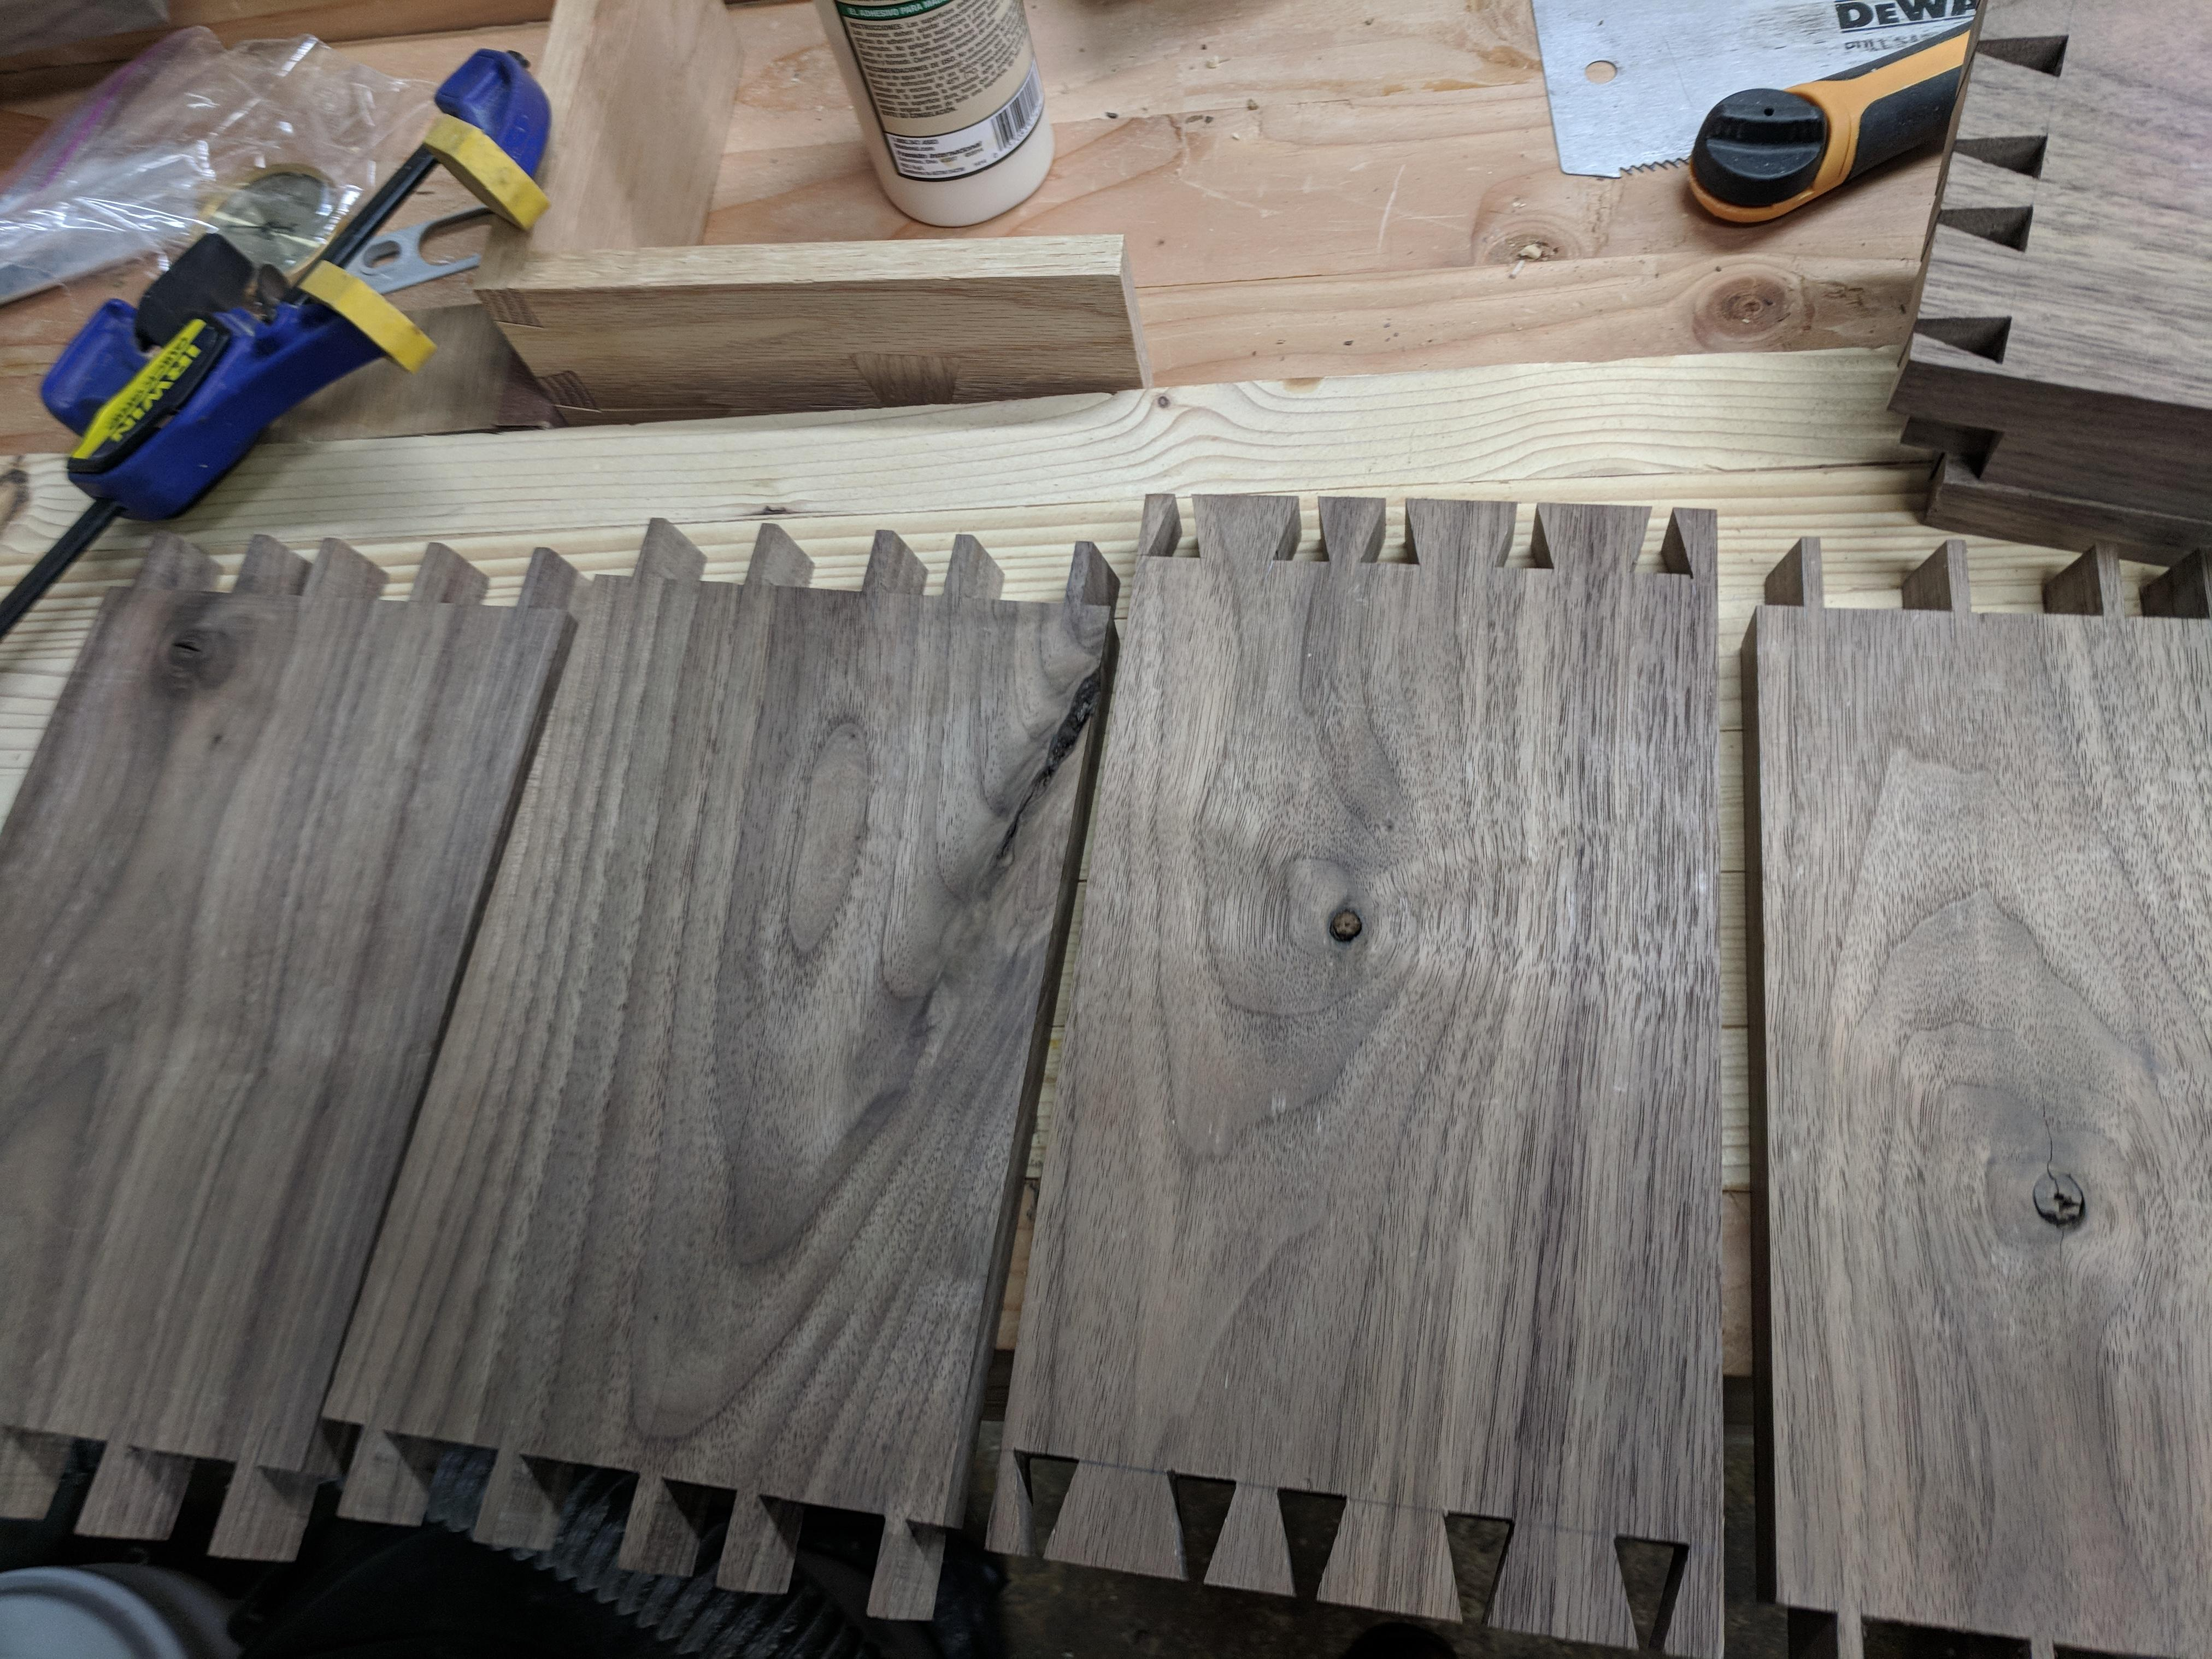 Filling Knot Holes In Wood With Epoxy